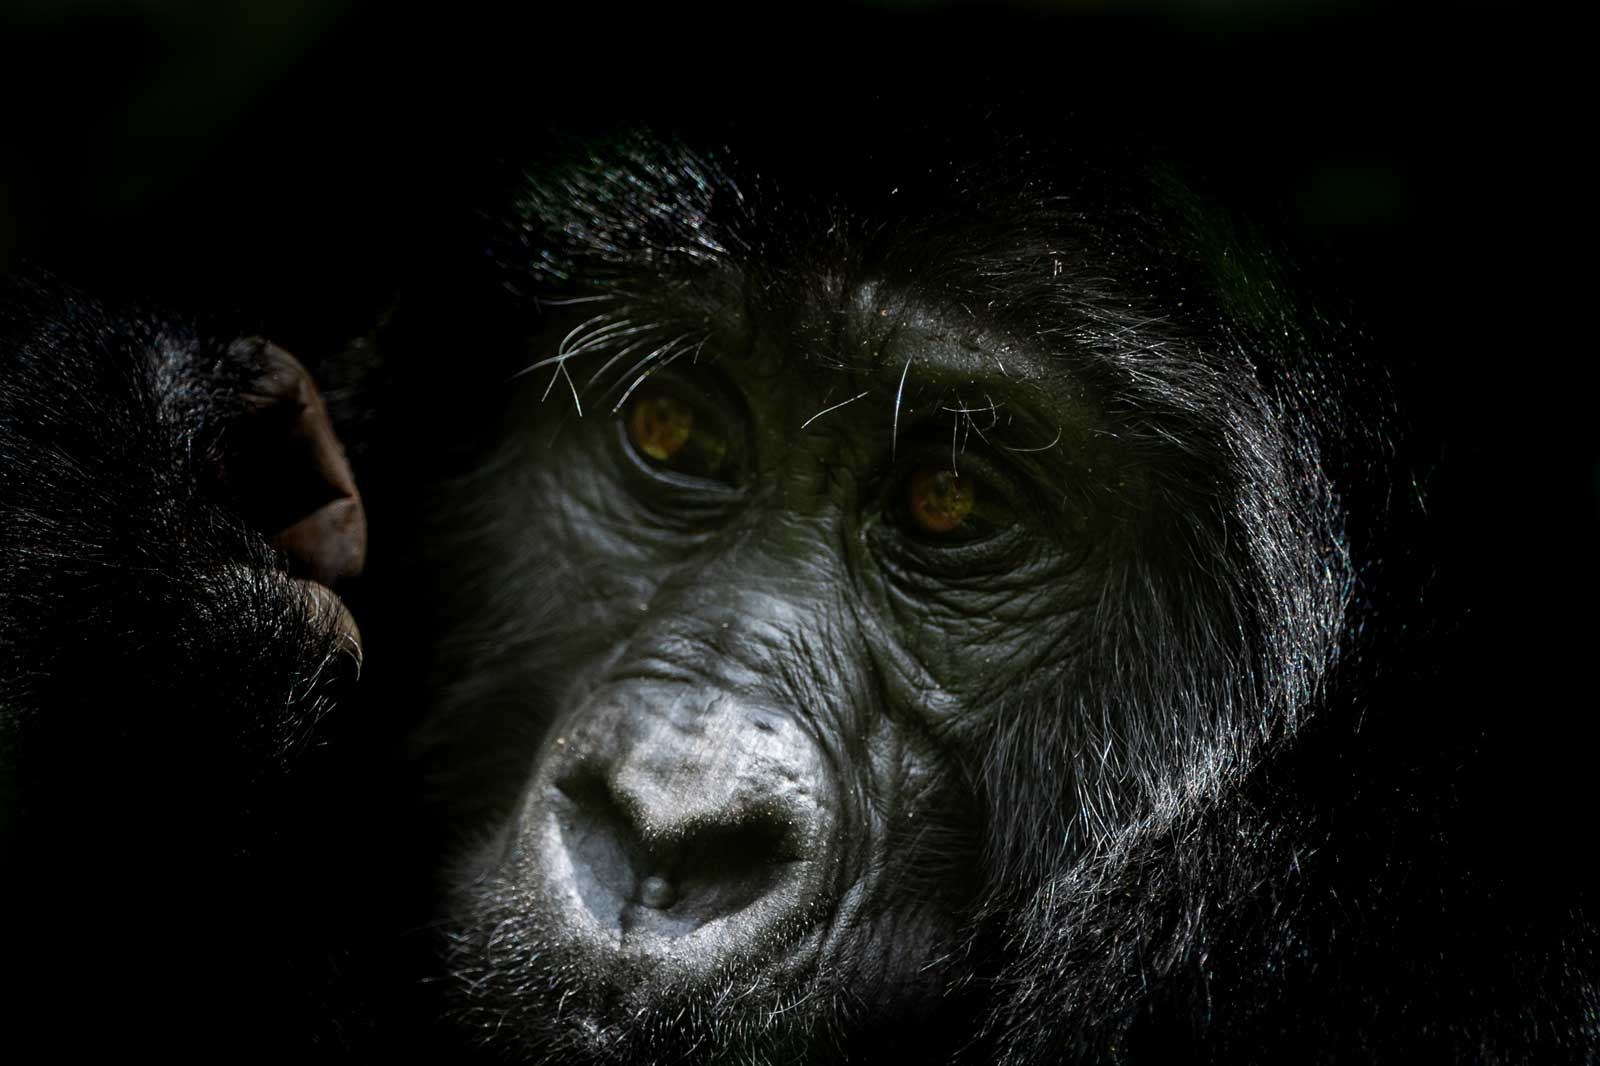 The Mountain Gorillas of Bwindi Impenetrable Forest